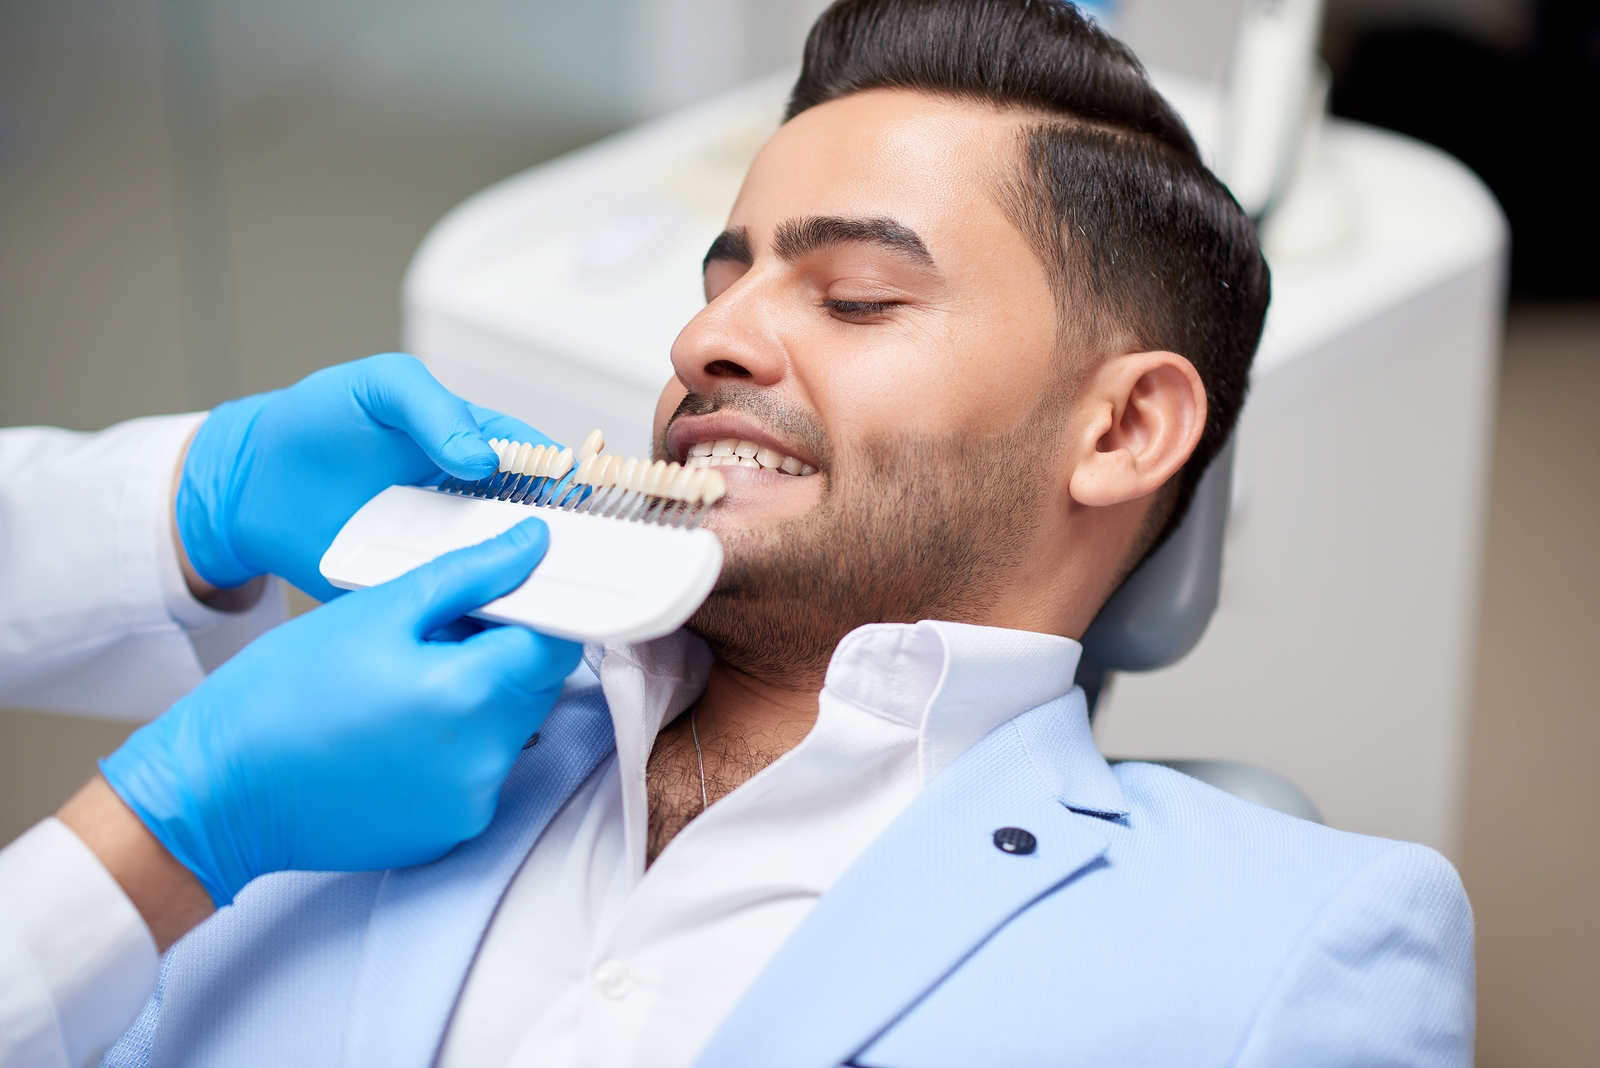 Illegal teeth whitening on the rise the dental practice having beautiful bright white teeth can make us look incredible give us confidence and even make us look and feel younger than we perhaps are solutioingenieria Image collections